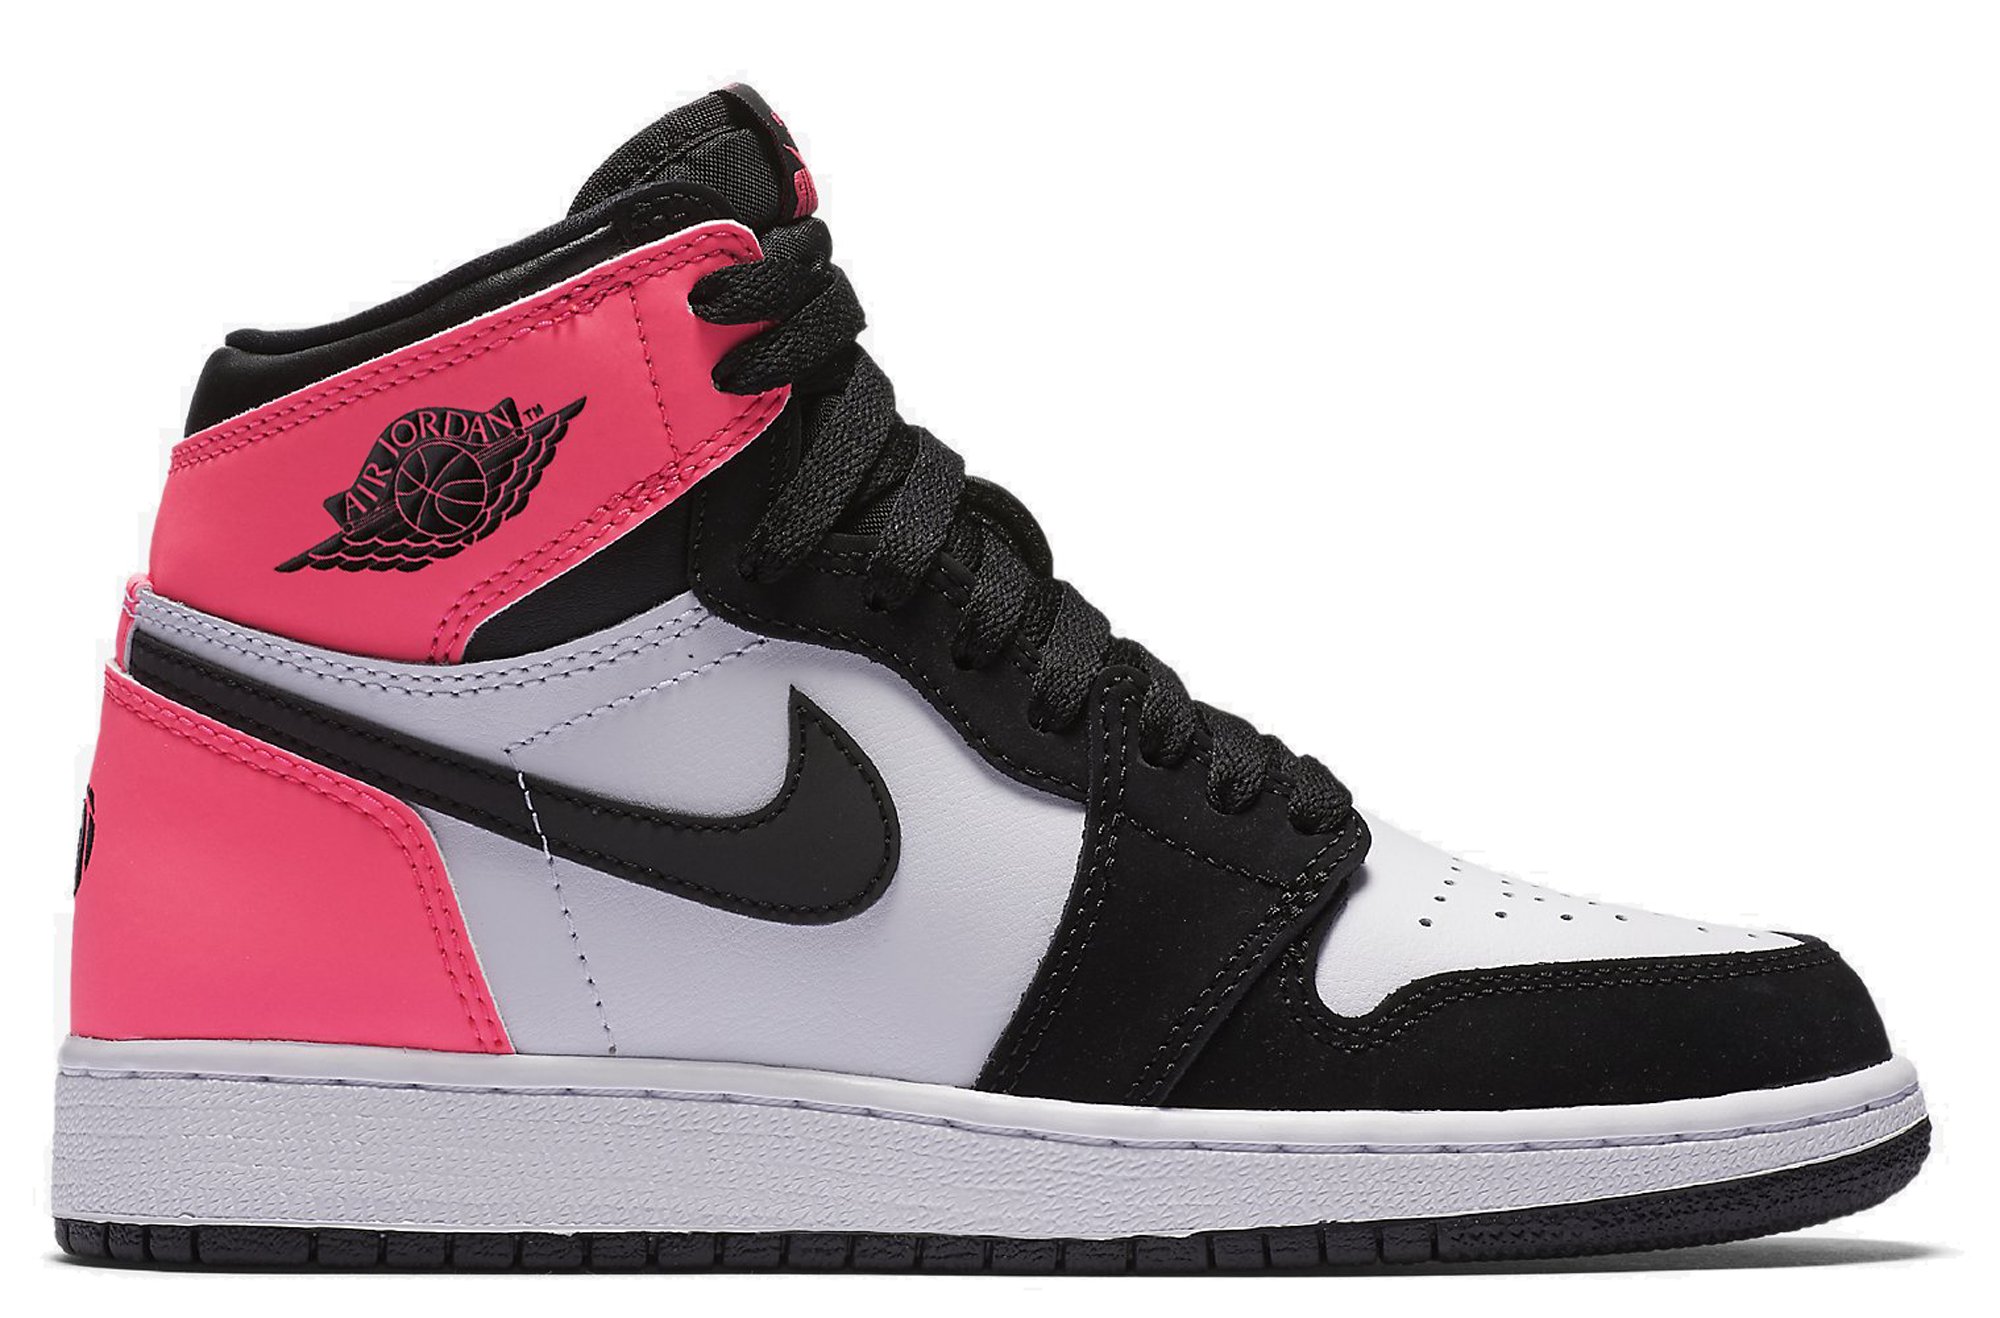 ad3b6ae85332d9 Air Jordan 1 Retro High OG Valentine s Day GS (2017) - StockX News